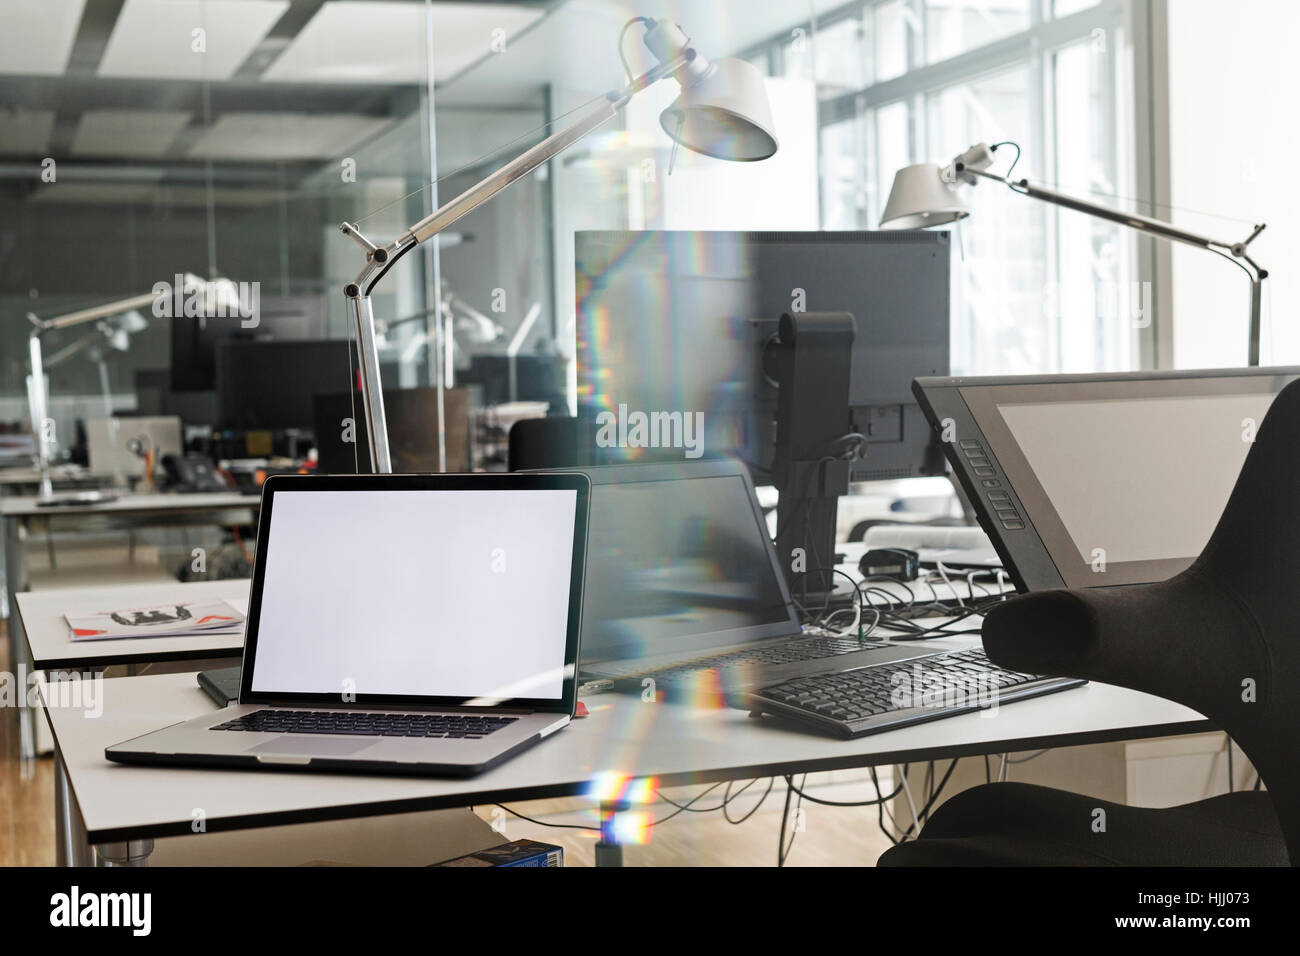 Computers on desk in office - Stock Image